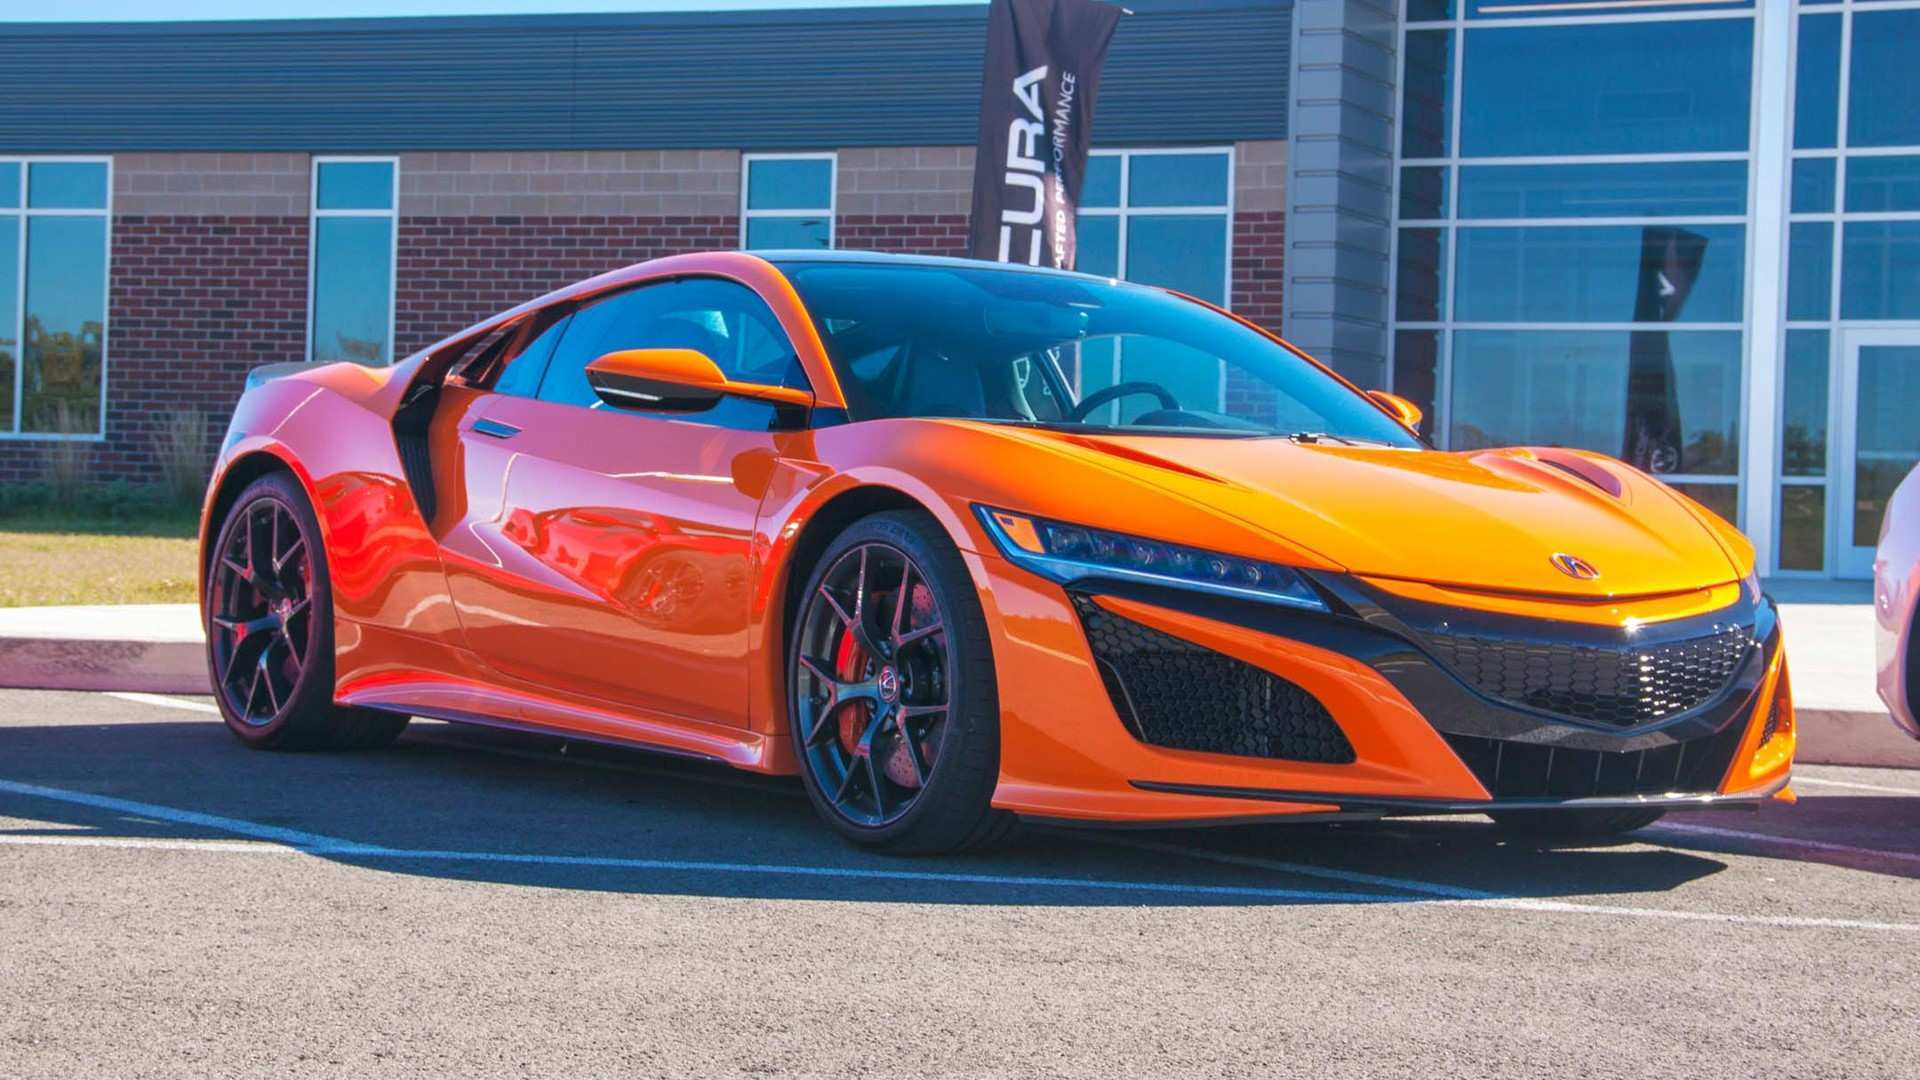 42 New 2019 Acura NSX Redesign